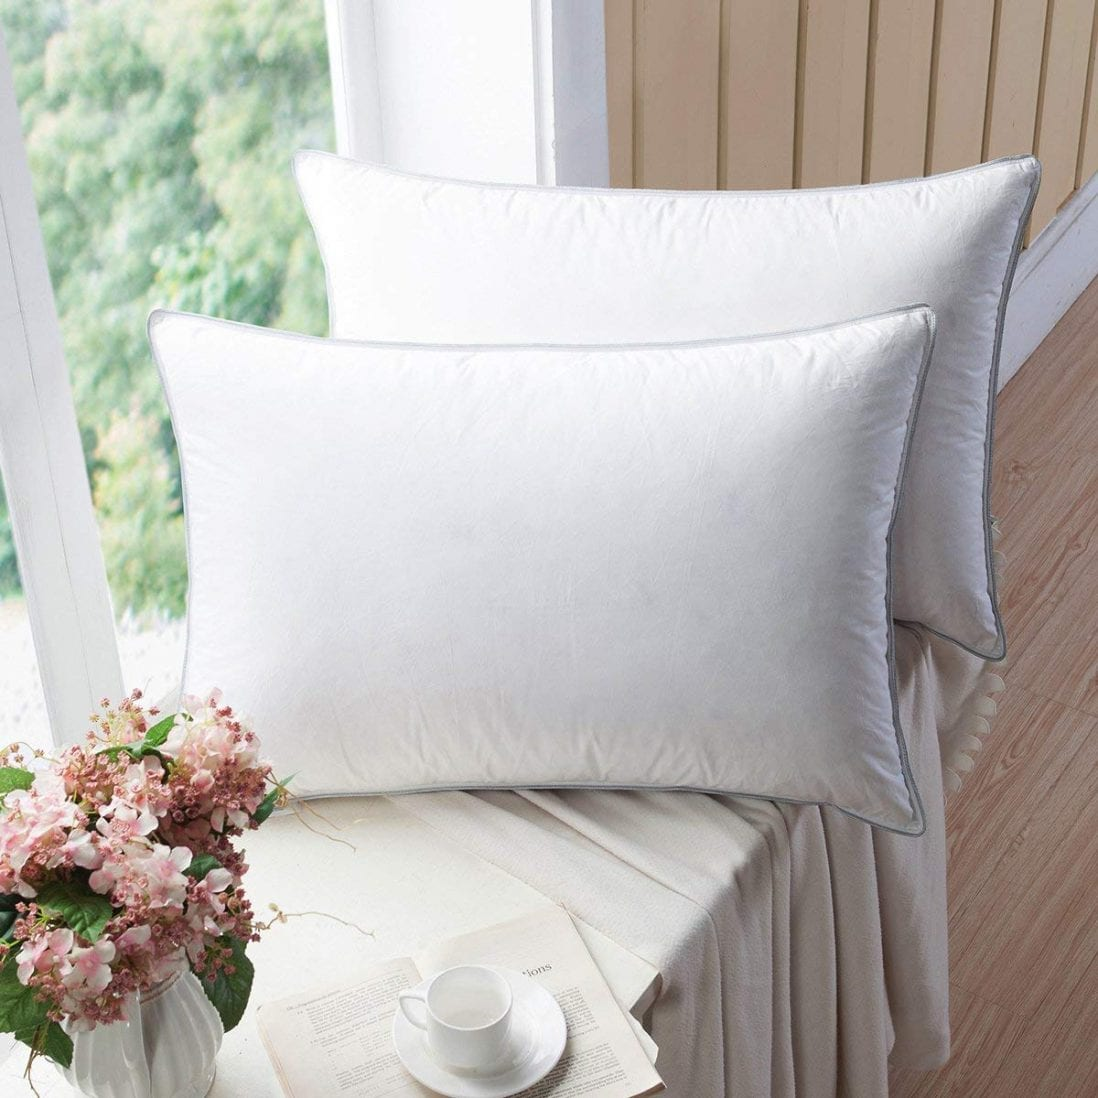 WENERSI most comfortable pillow review by www.dailysleep.org